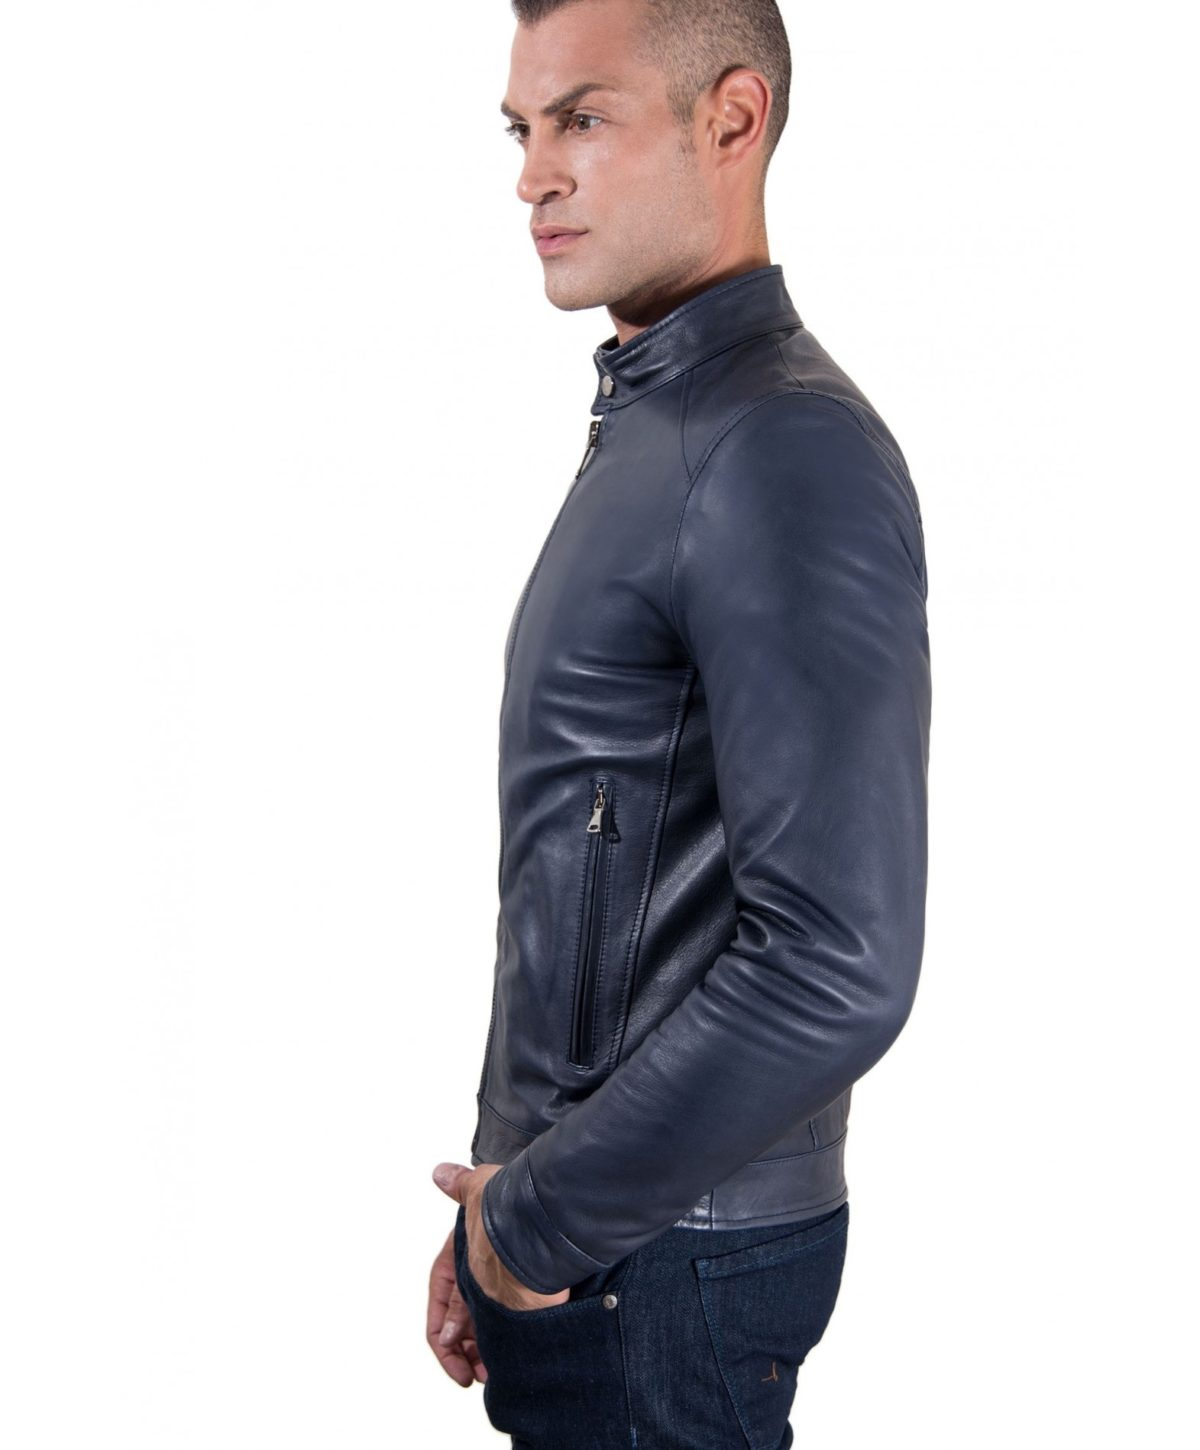 men-s-leather-jacket-korean-collar-two-pockets-blue-color-hamilton (4)